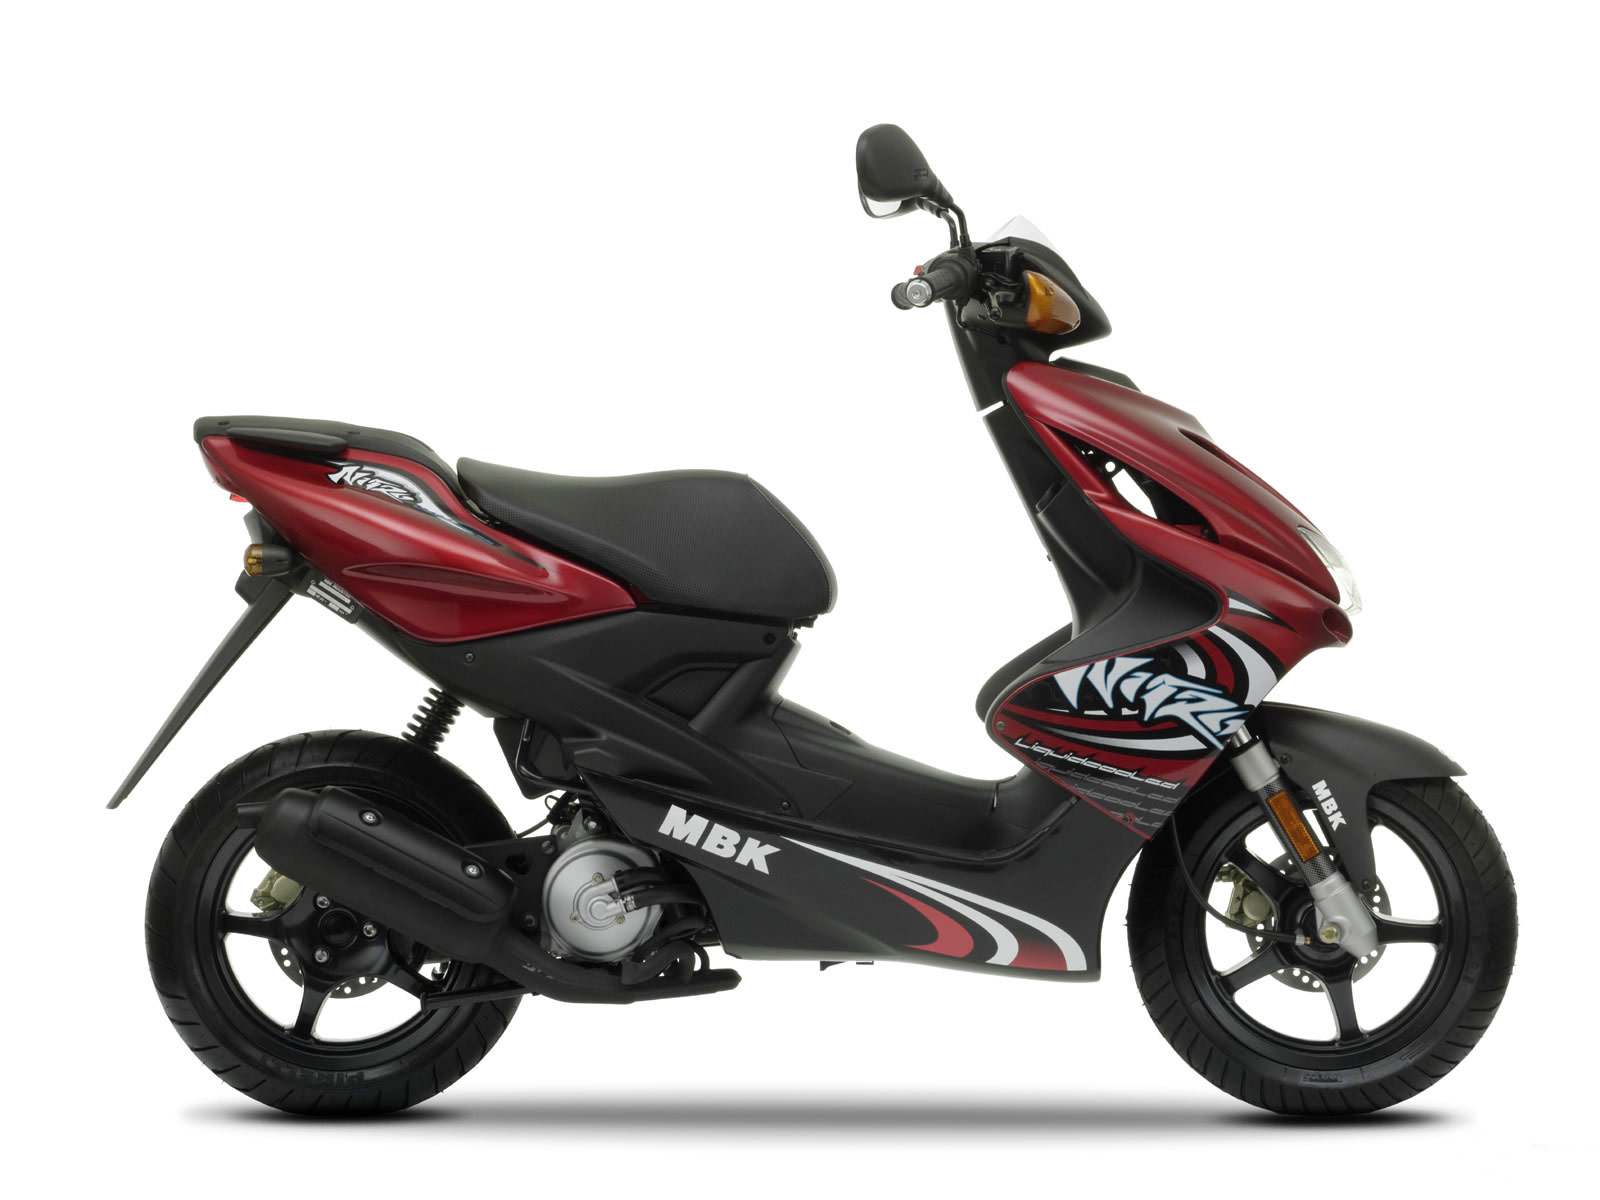 2009 mbk nitro scooter picture specifications insurance information. Black Bedroom Furniture Sets. Home Design Ideas